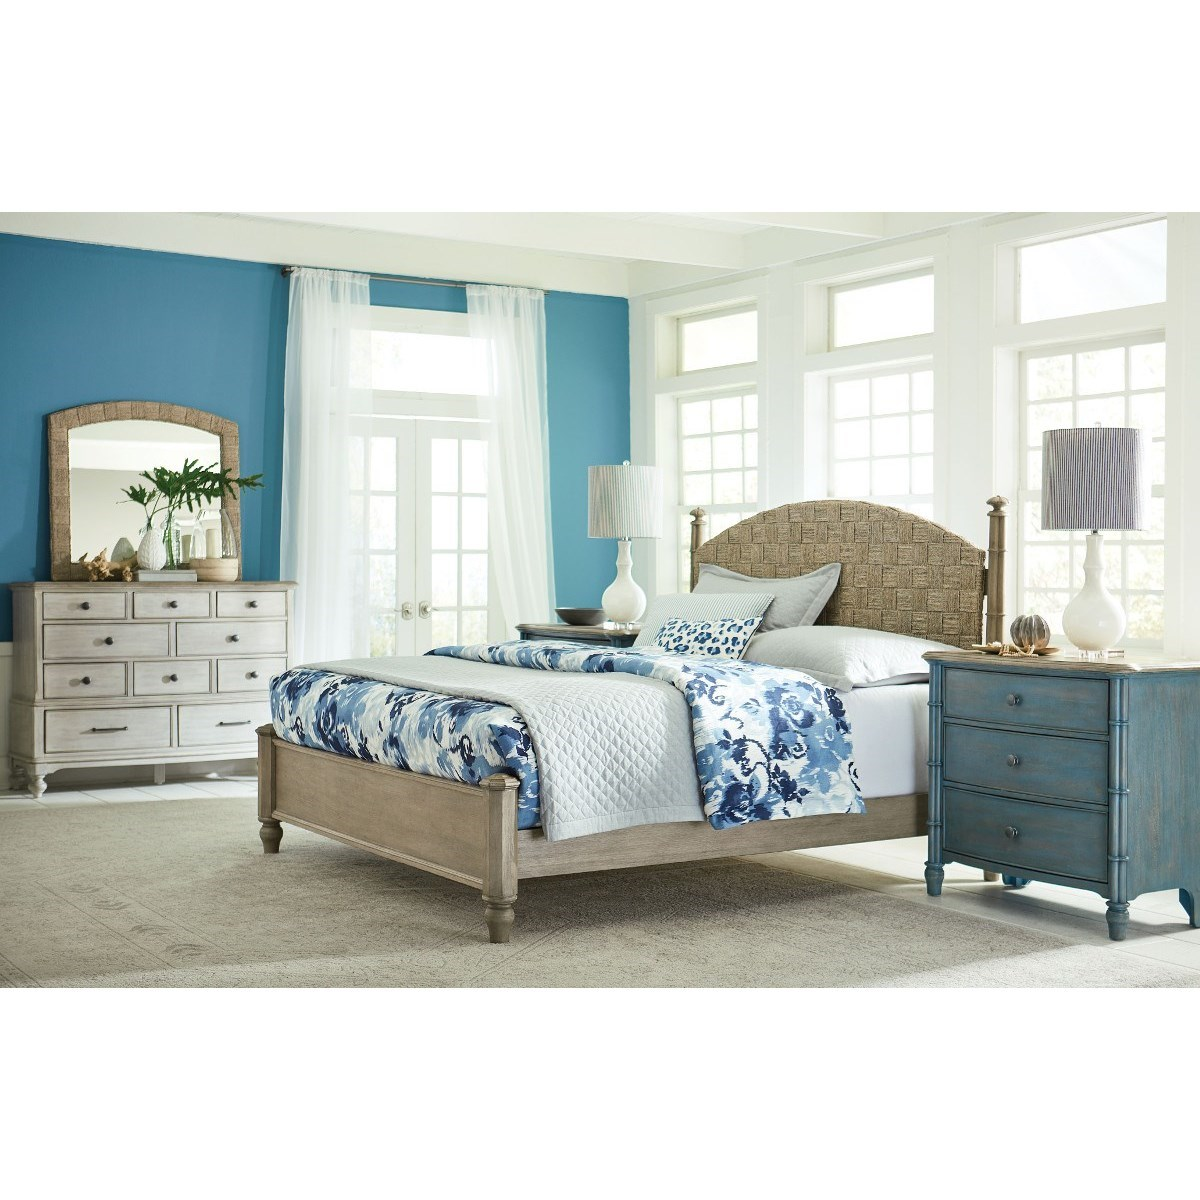 Litchfield Queen Bedroom Group by American Drew at Stoney Creek Furniture